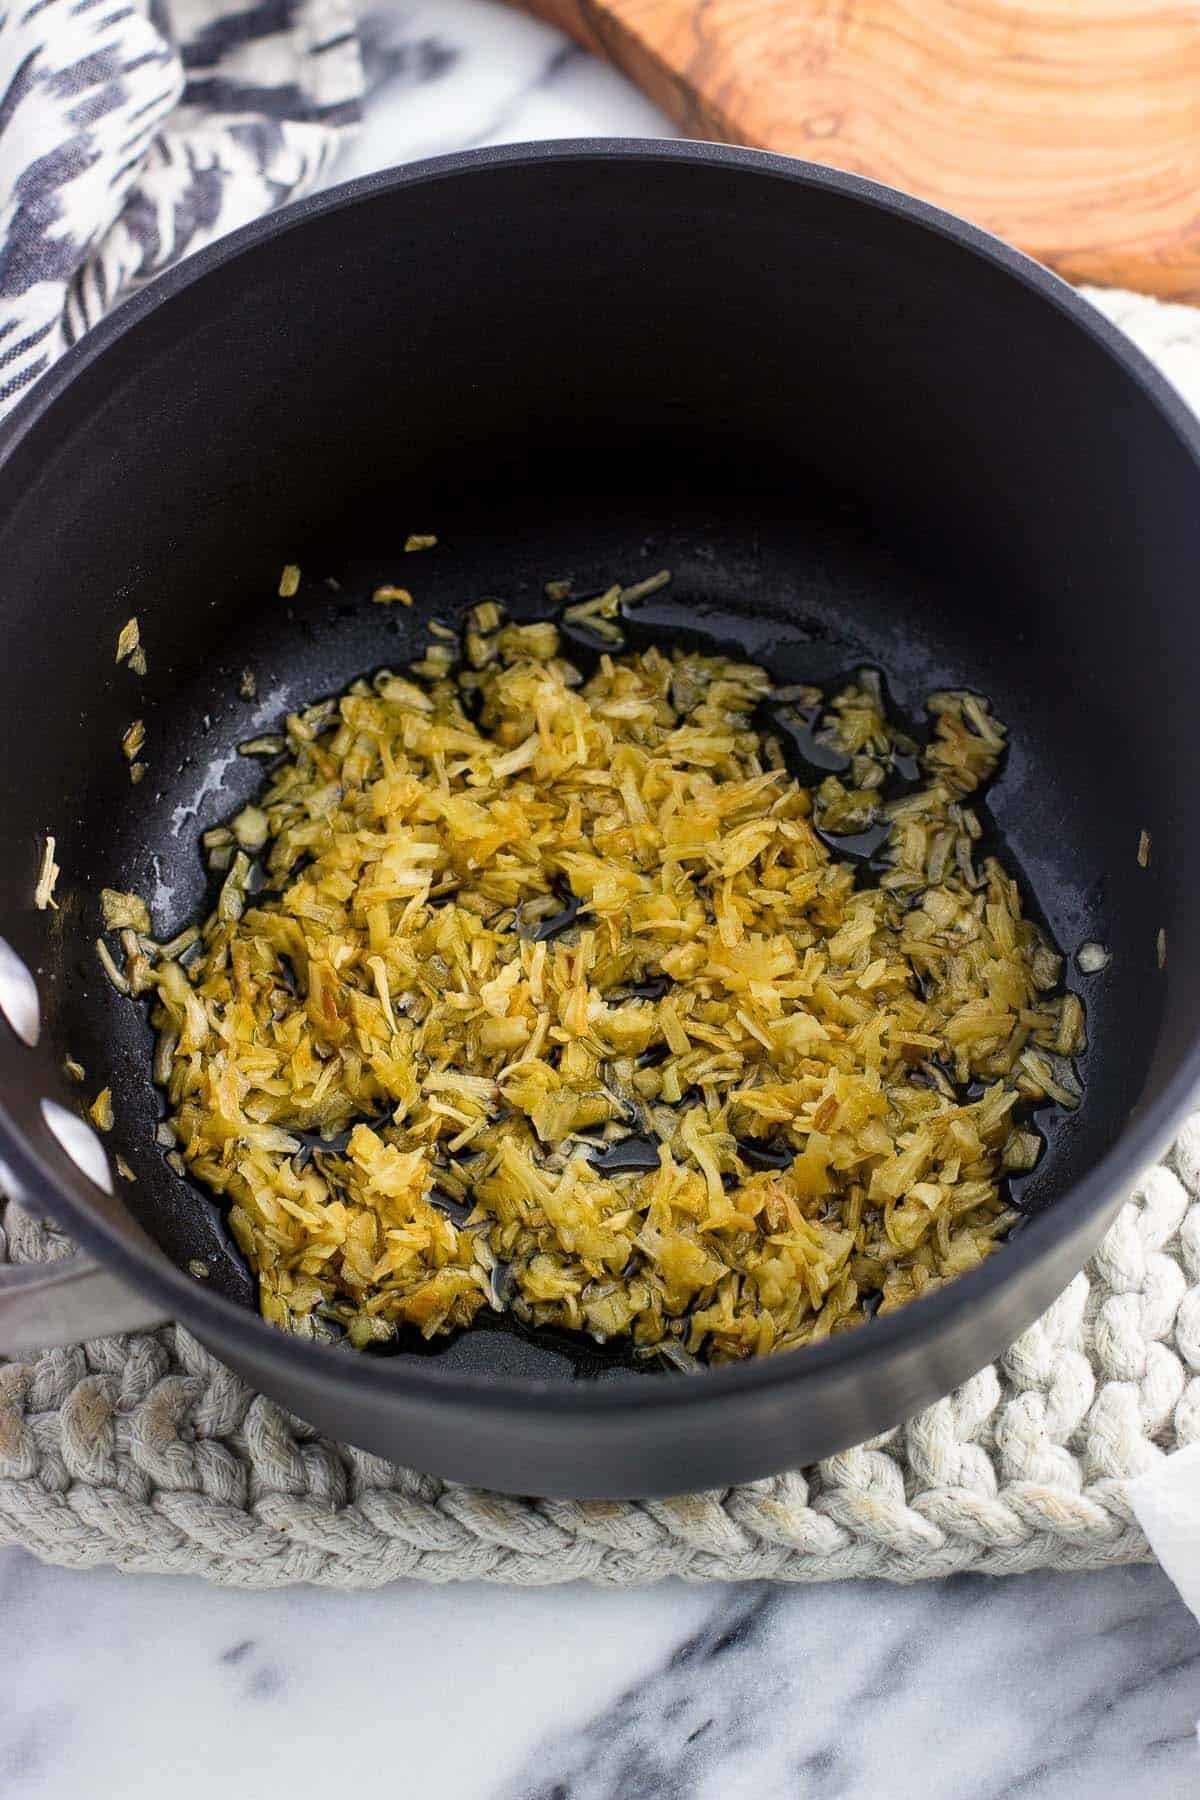 Dried minced onion in a small saucepan with oil